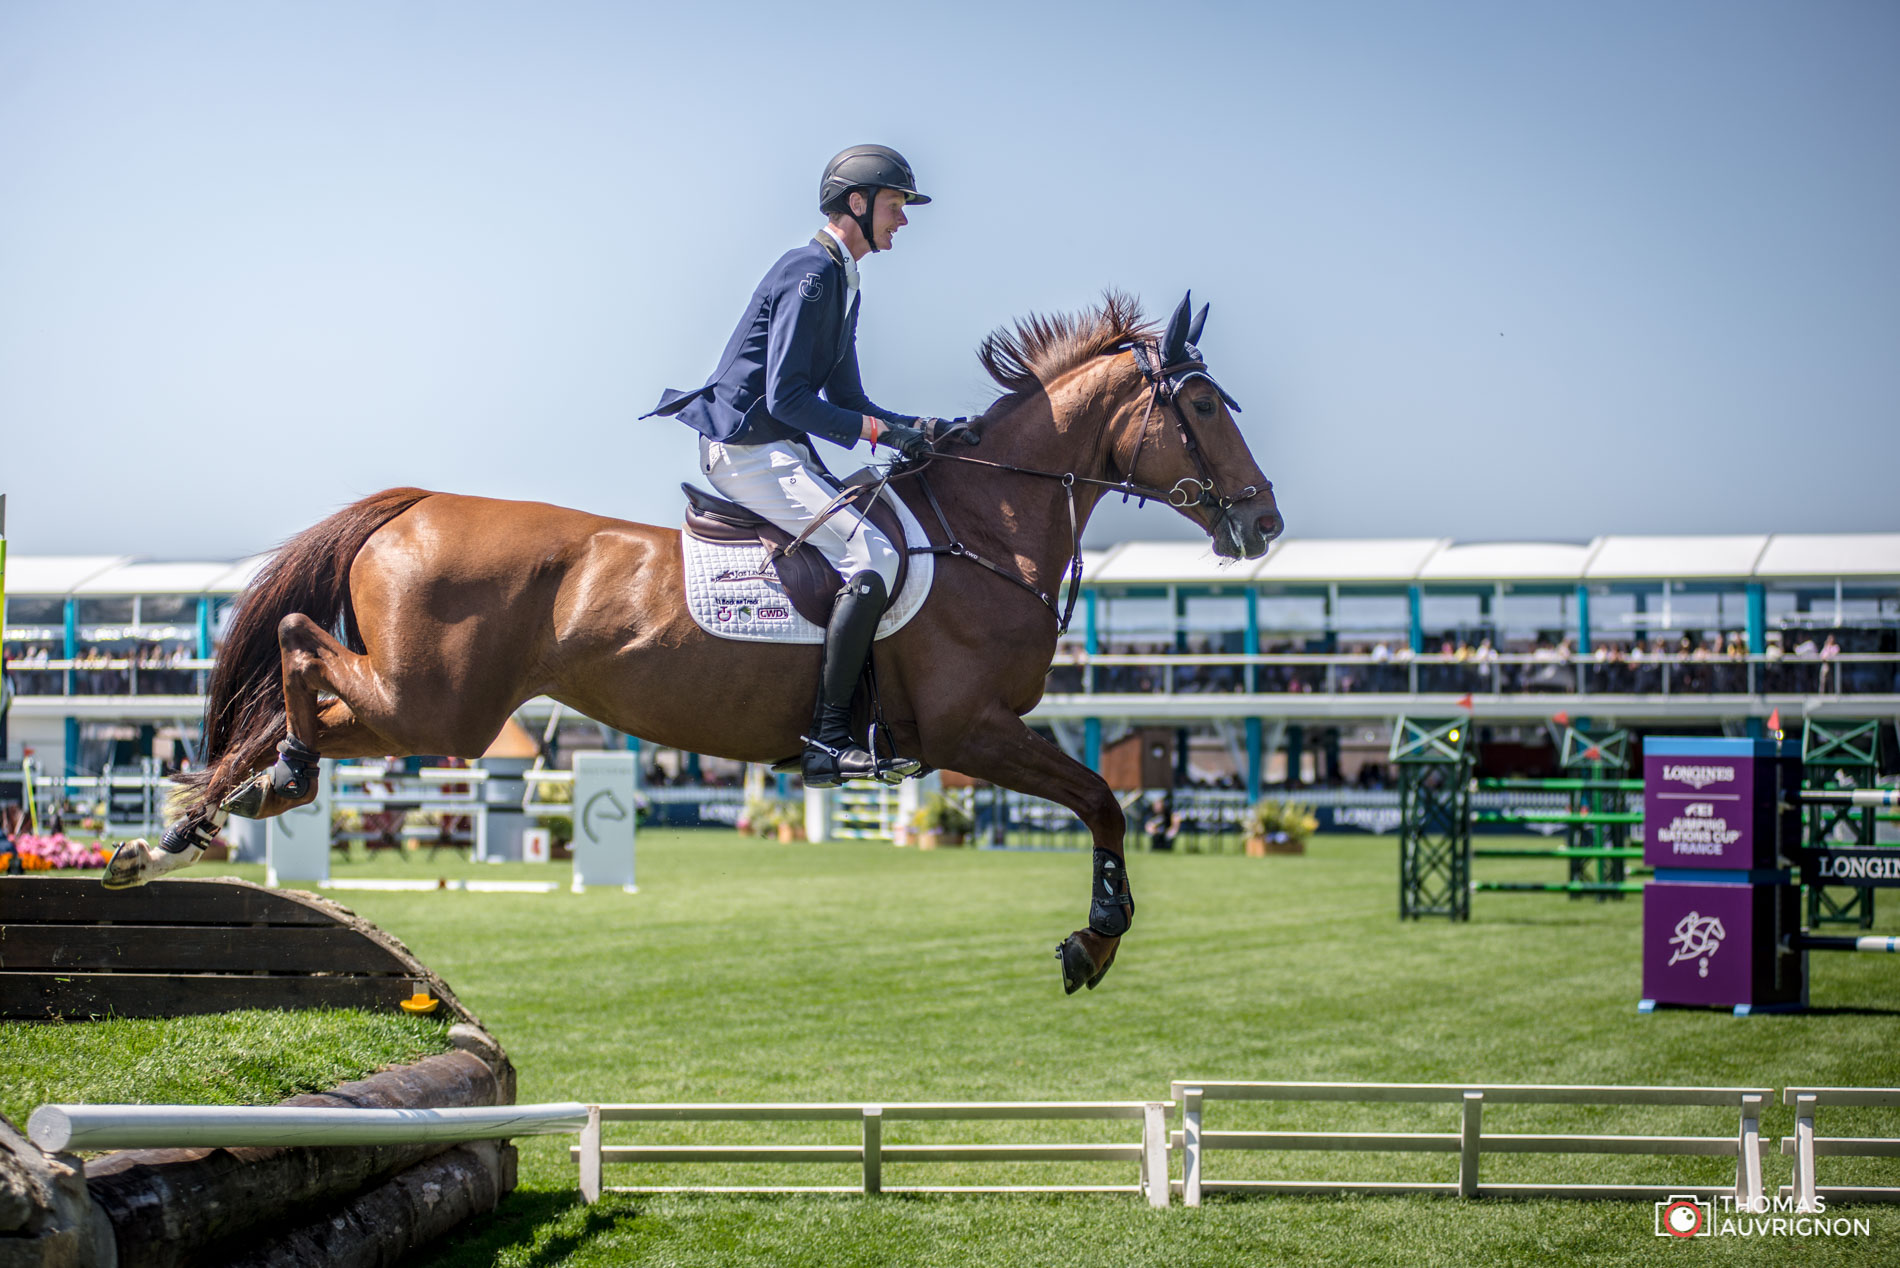 Jumping International La Baule Schuttert Frank La Fille Rouge